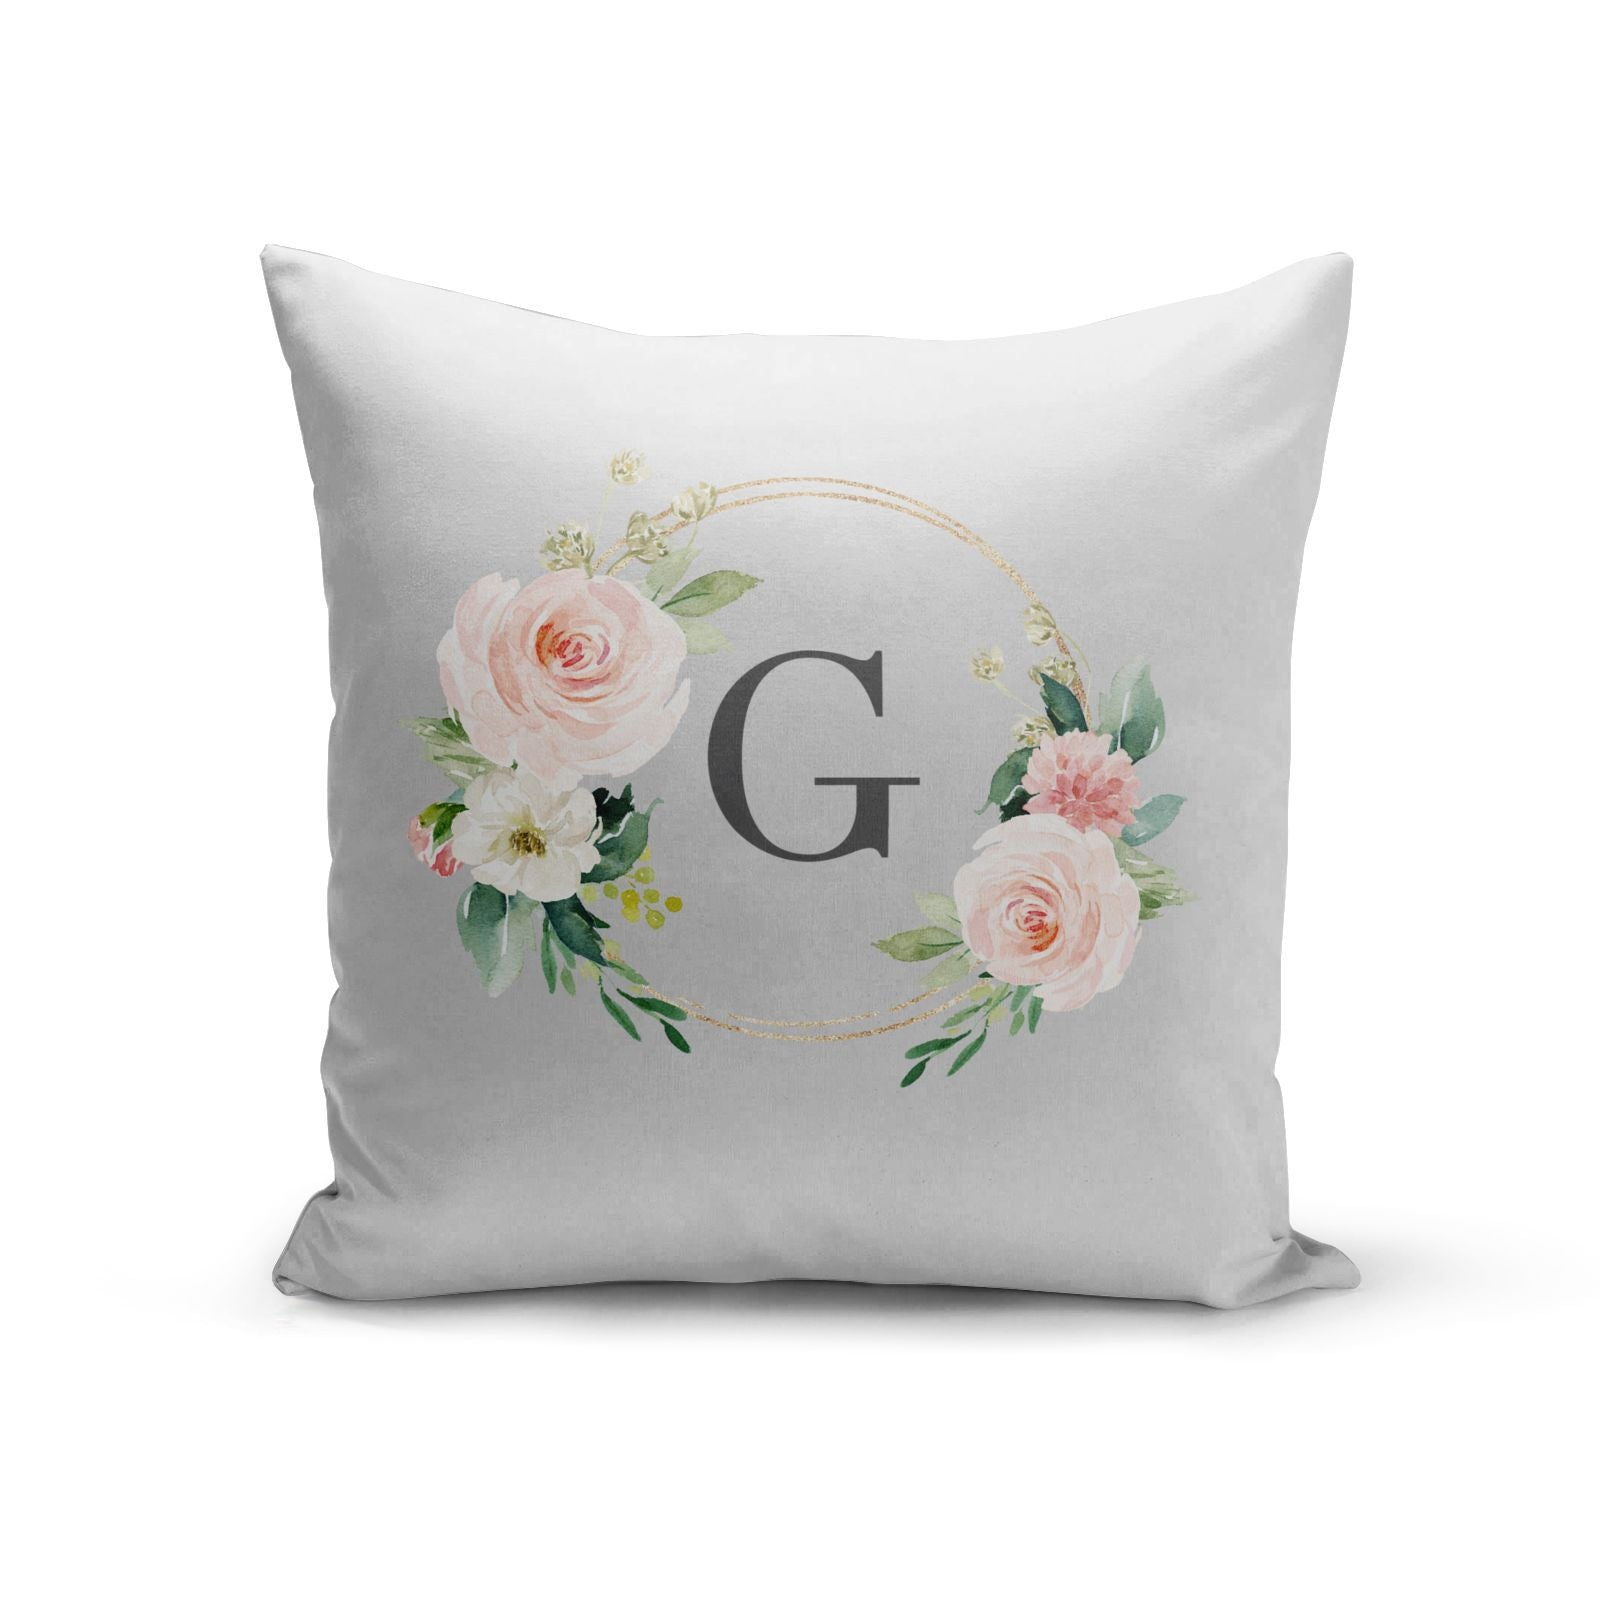 Personalised Blush Floral Wreath Cotton Cushion